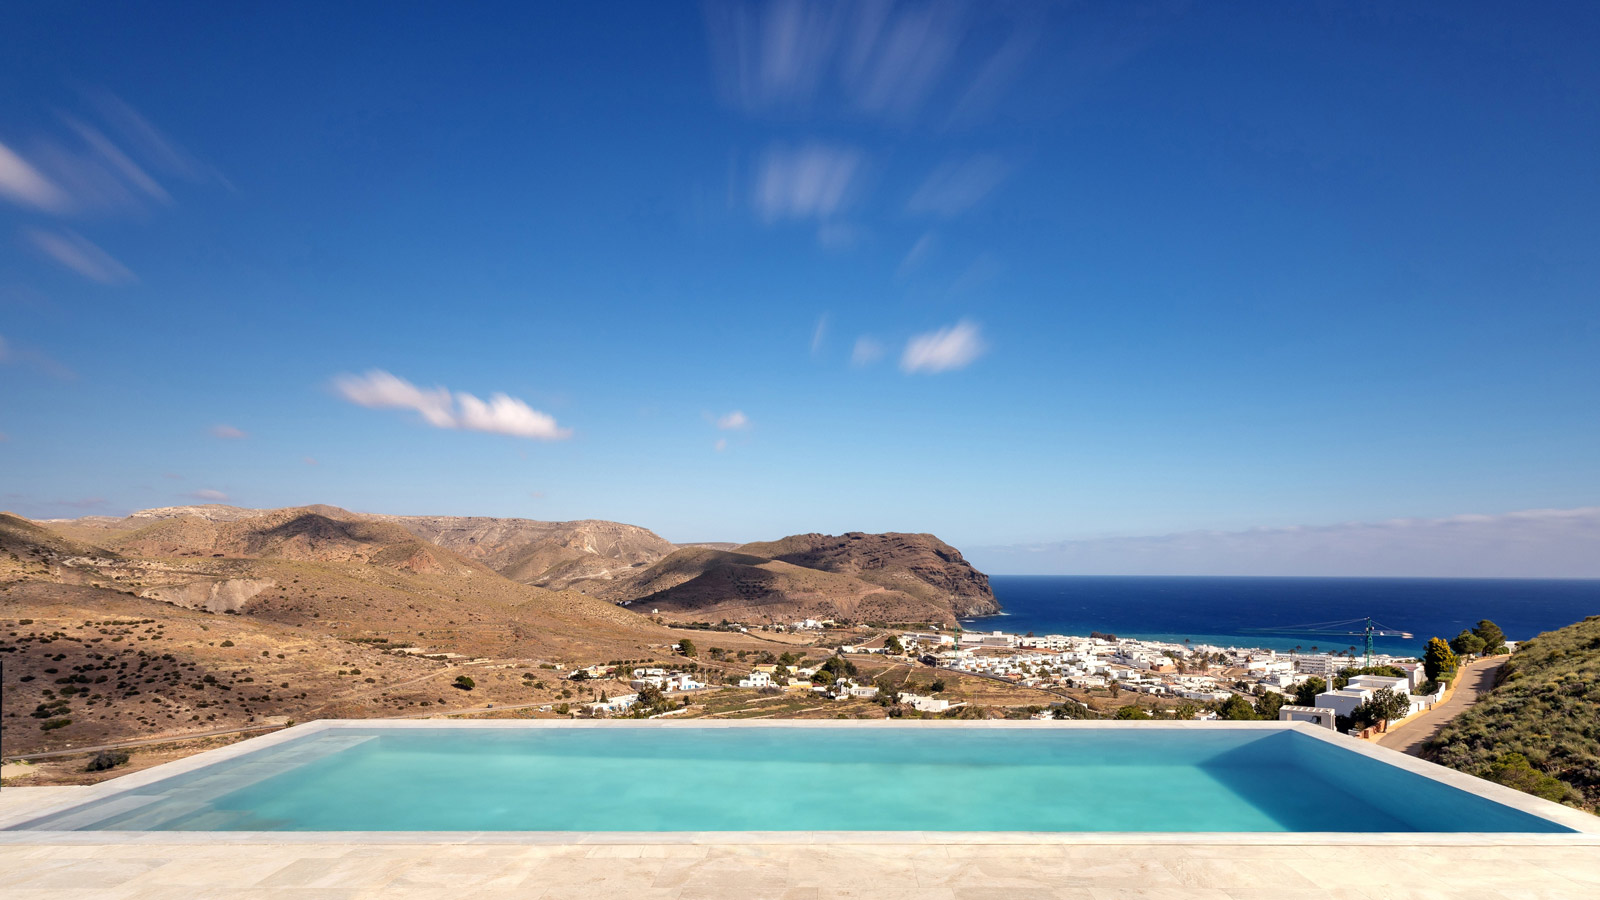 The 12th Porcelanosa Awards Finalists: the Jacaranda house, a direct connection with the natural park of Cabo de Gata